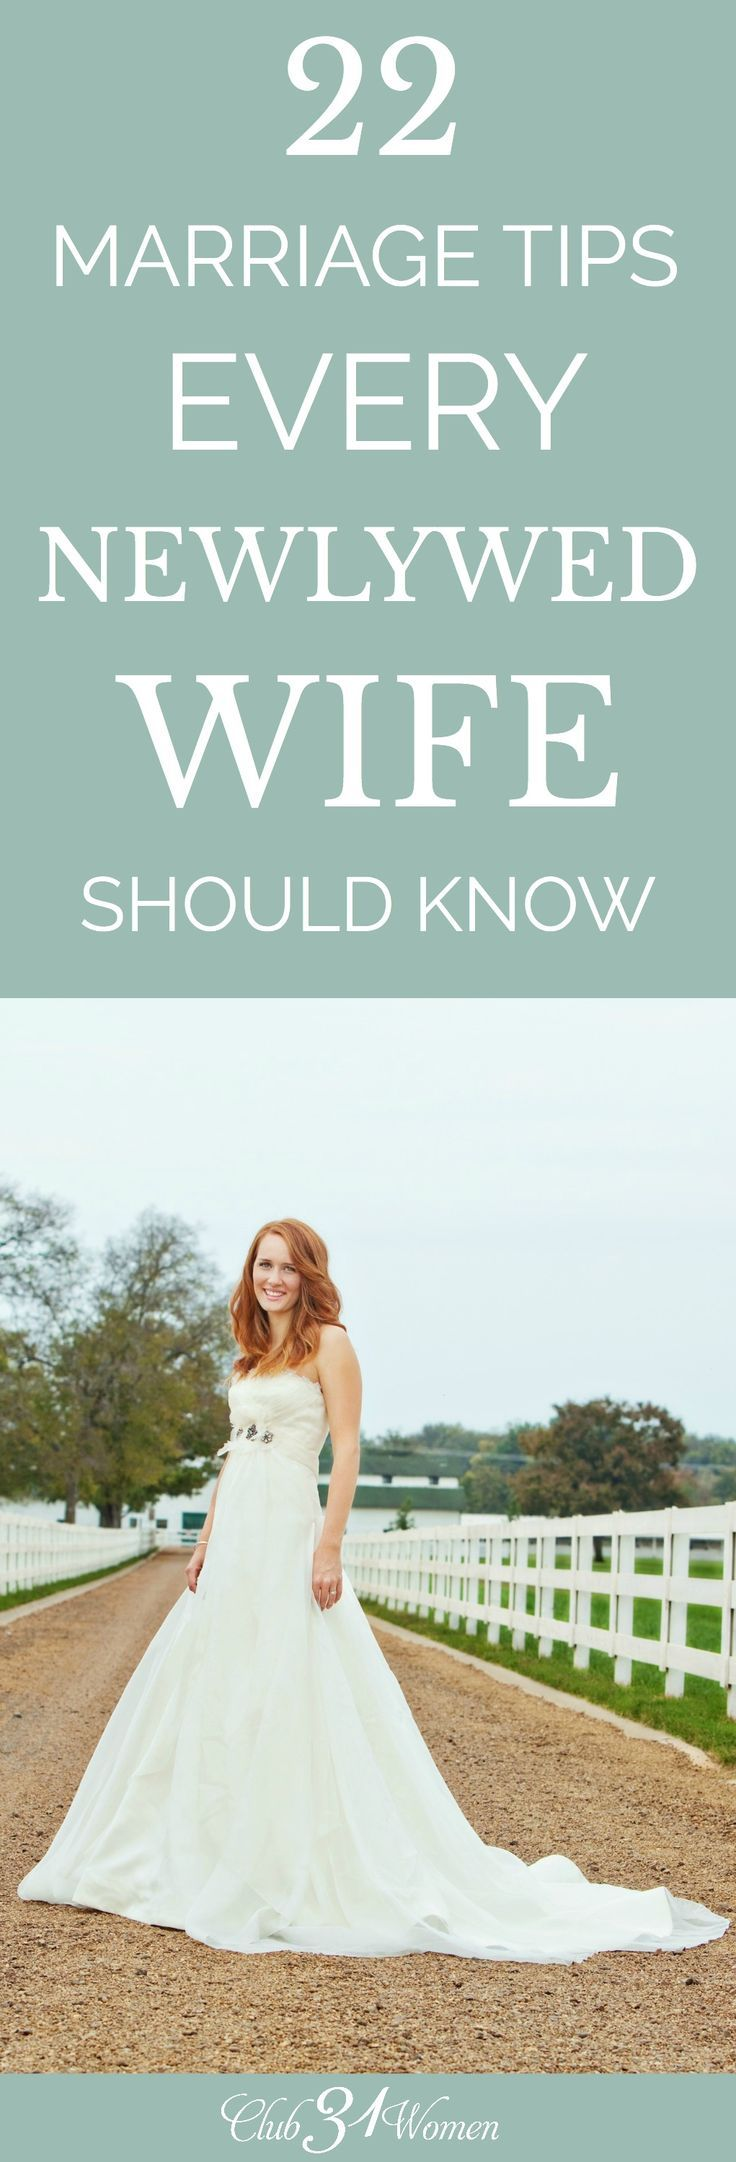 When entering marriage, it's important to recognize being intentional matters to keep a marriage strong. A few marriage tips can be very helpful! via /Club31Women/